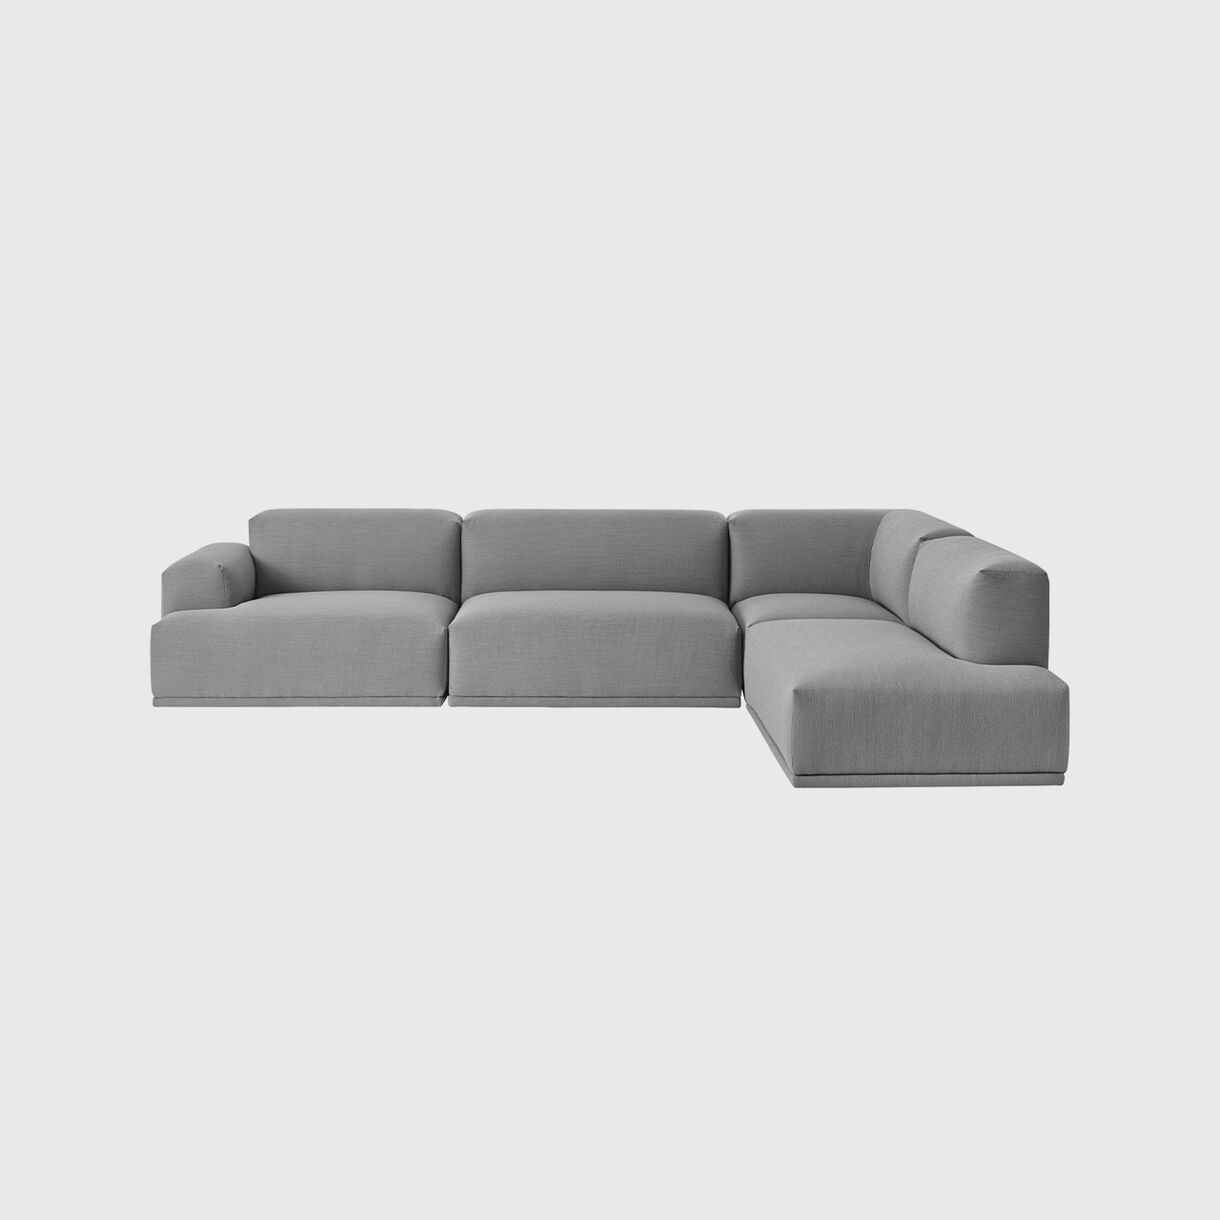 Connect Modular Corner Sofa, Steelcut Trio 133